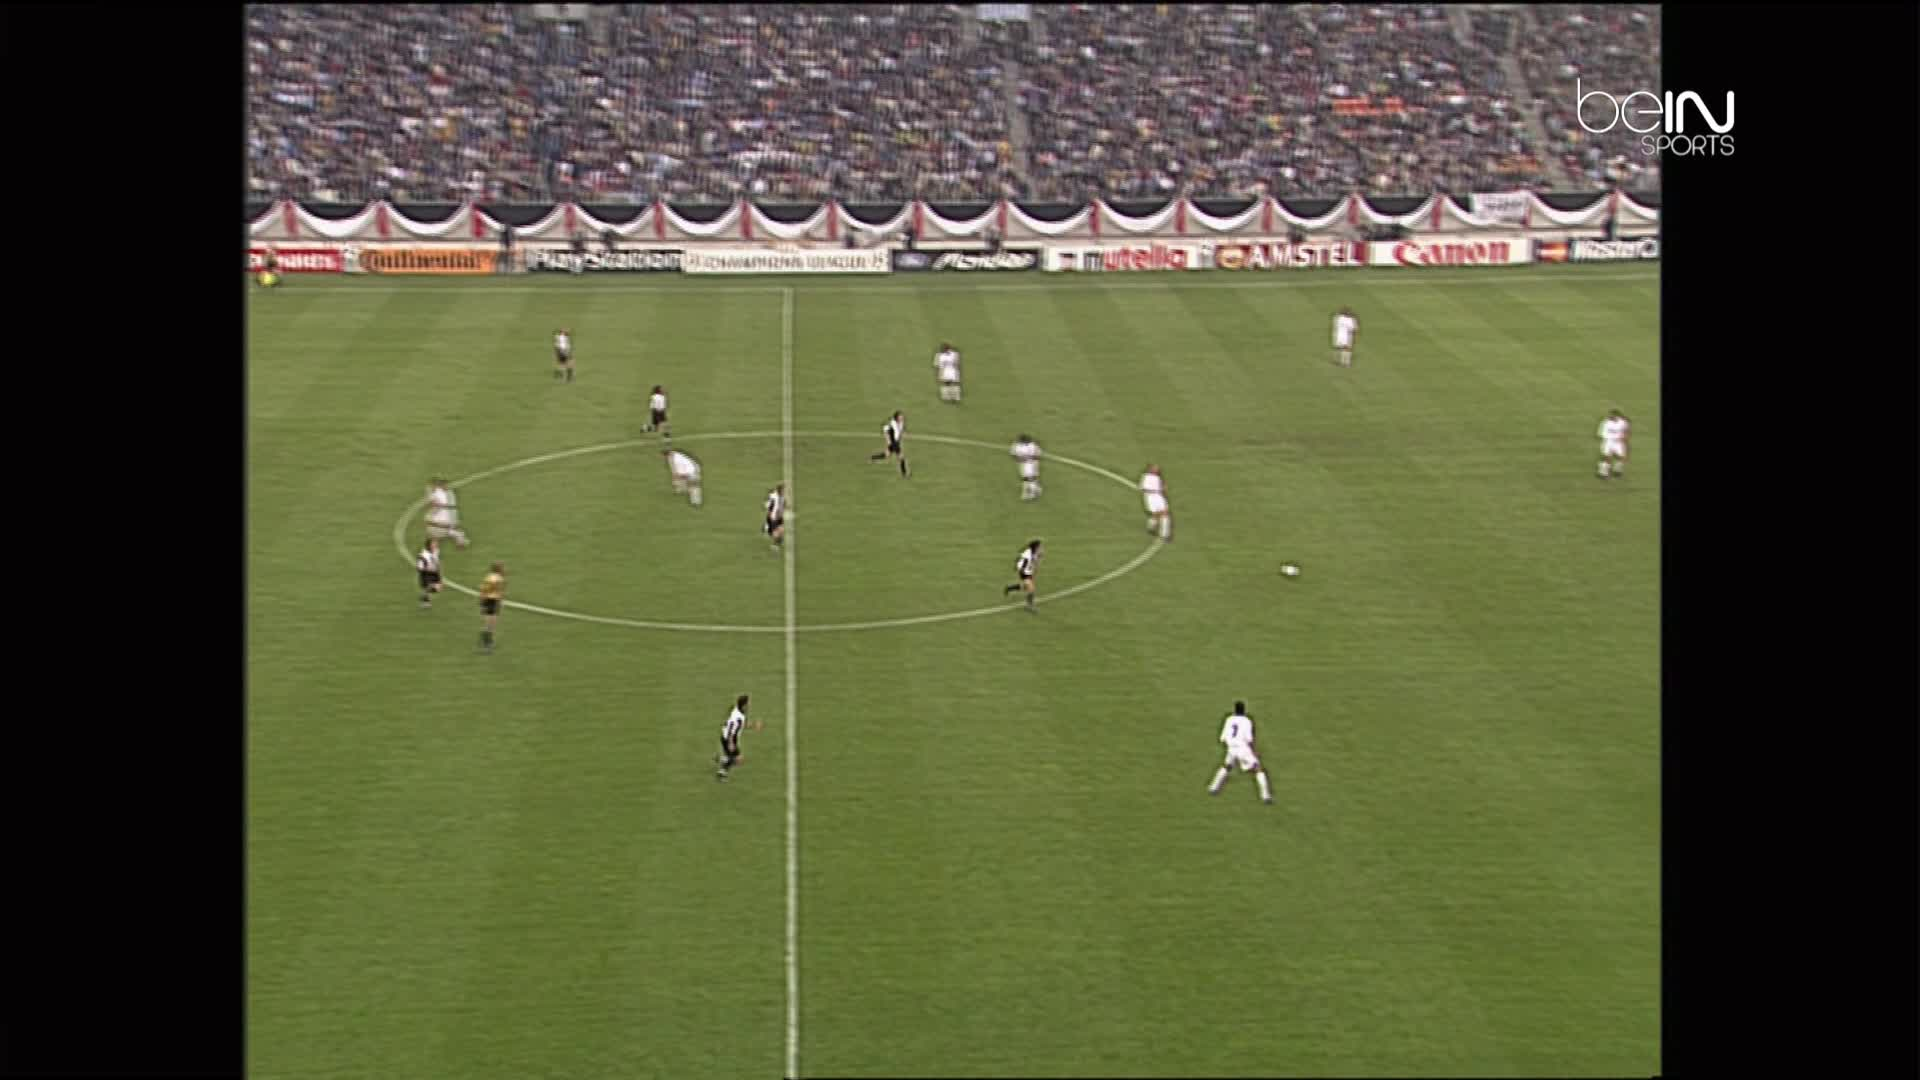 Champions League 1997/1998 - Final - Real Madrid Vs. Juventus (1080i/1080p/576p) (Castellano/Español Latino/Castellano) F1498132a8ddbf7303a89cc1dfd0223eo